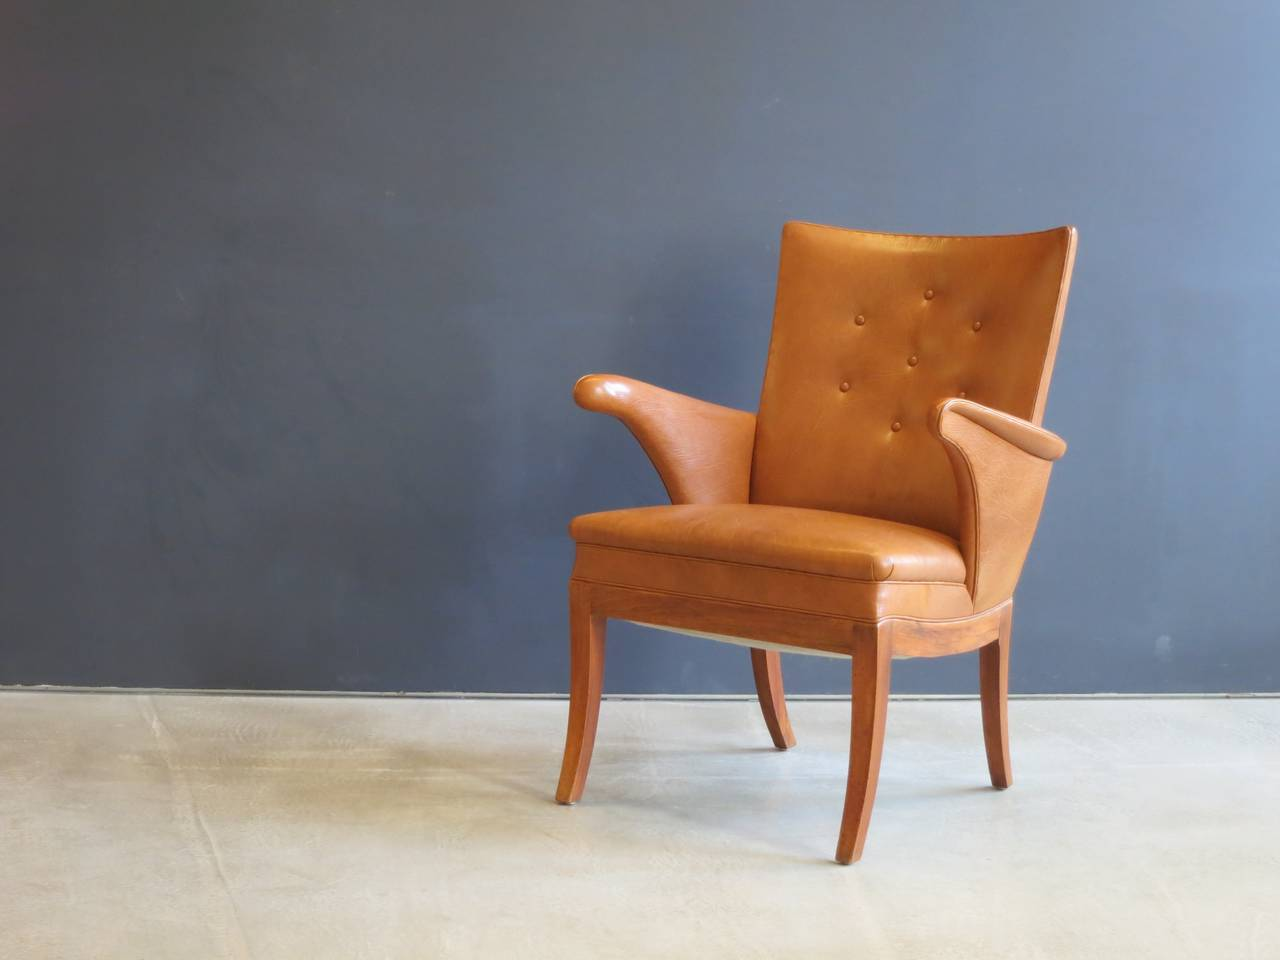 Mid-20th Century Armchair in Nigerian Goatskin by Frits Henningsen, 1930s For Sale